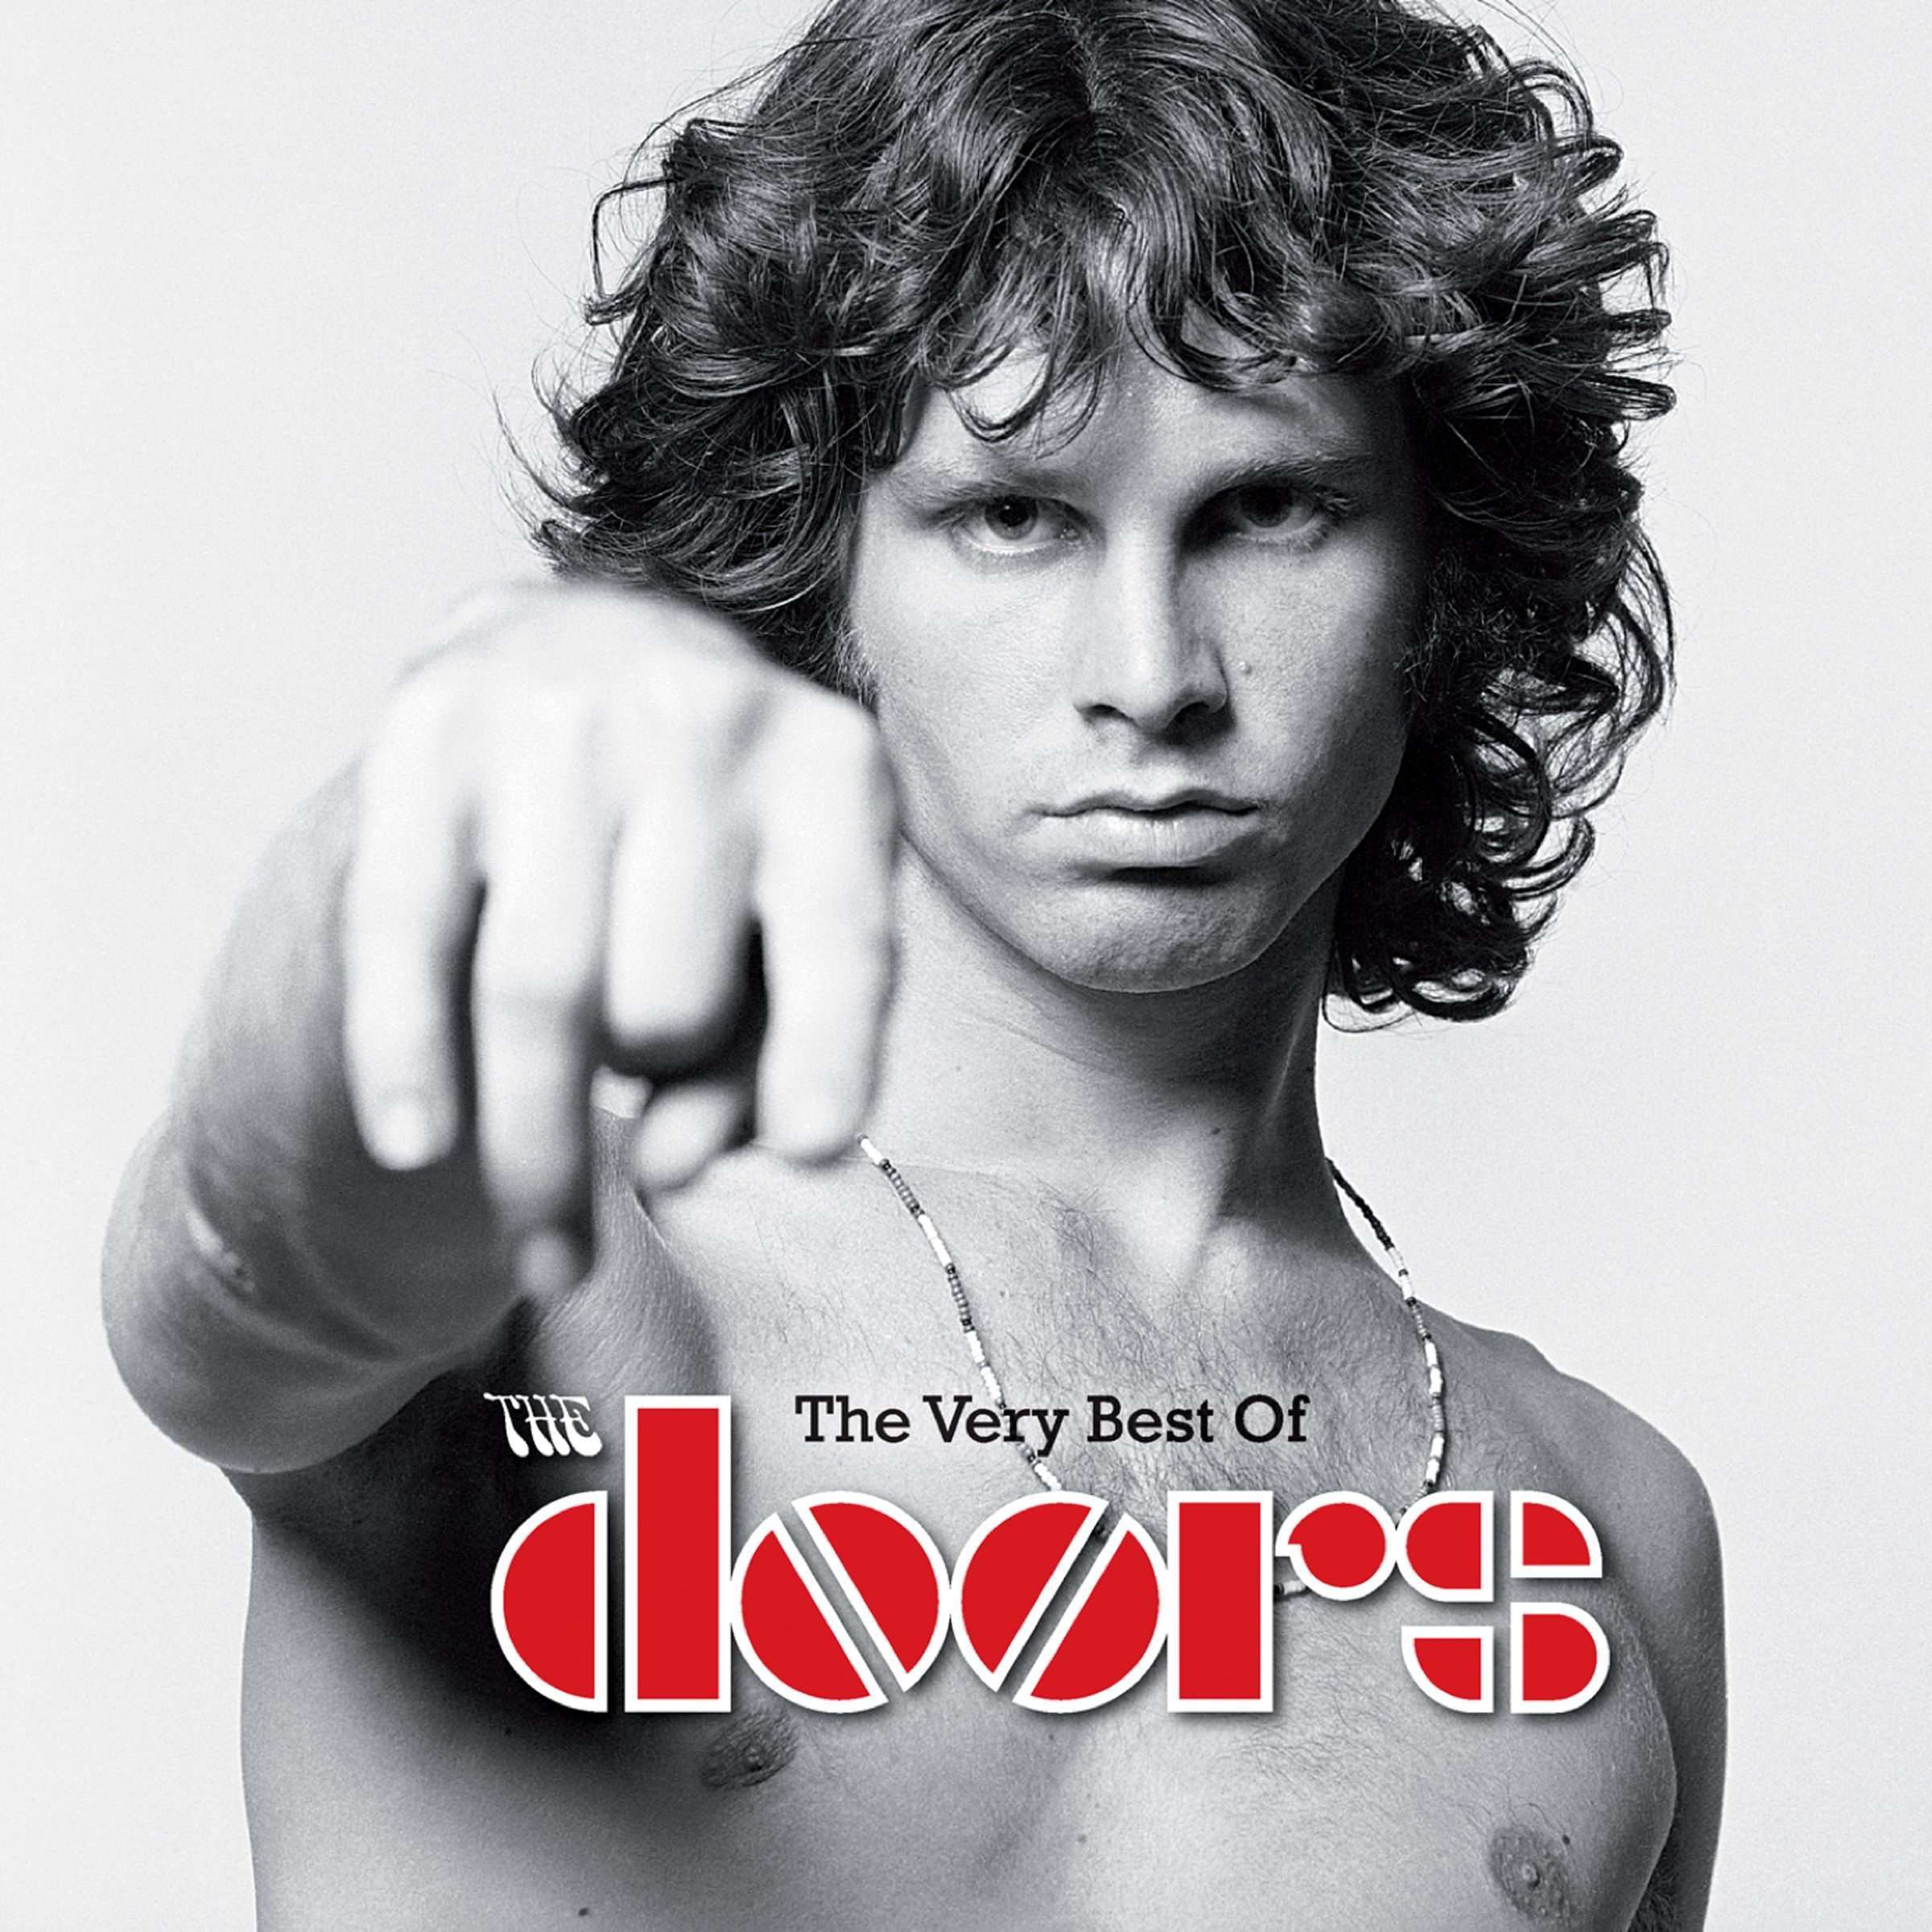 The Very Best Of The Doors (2CD) by Rhino